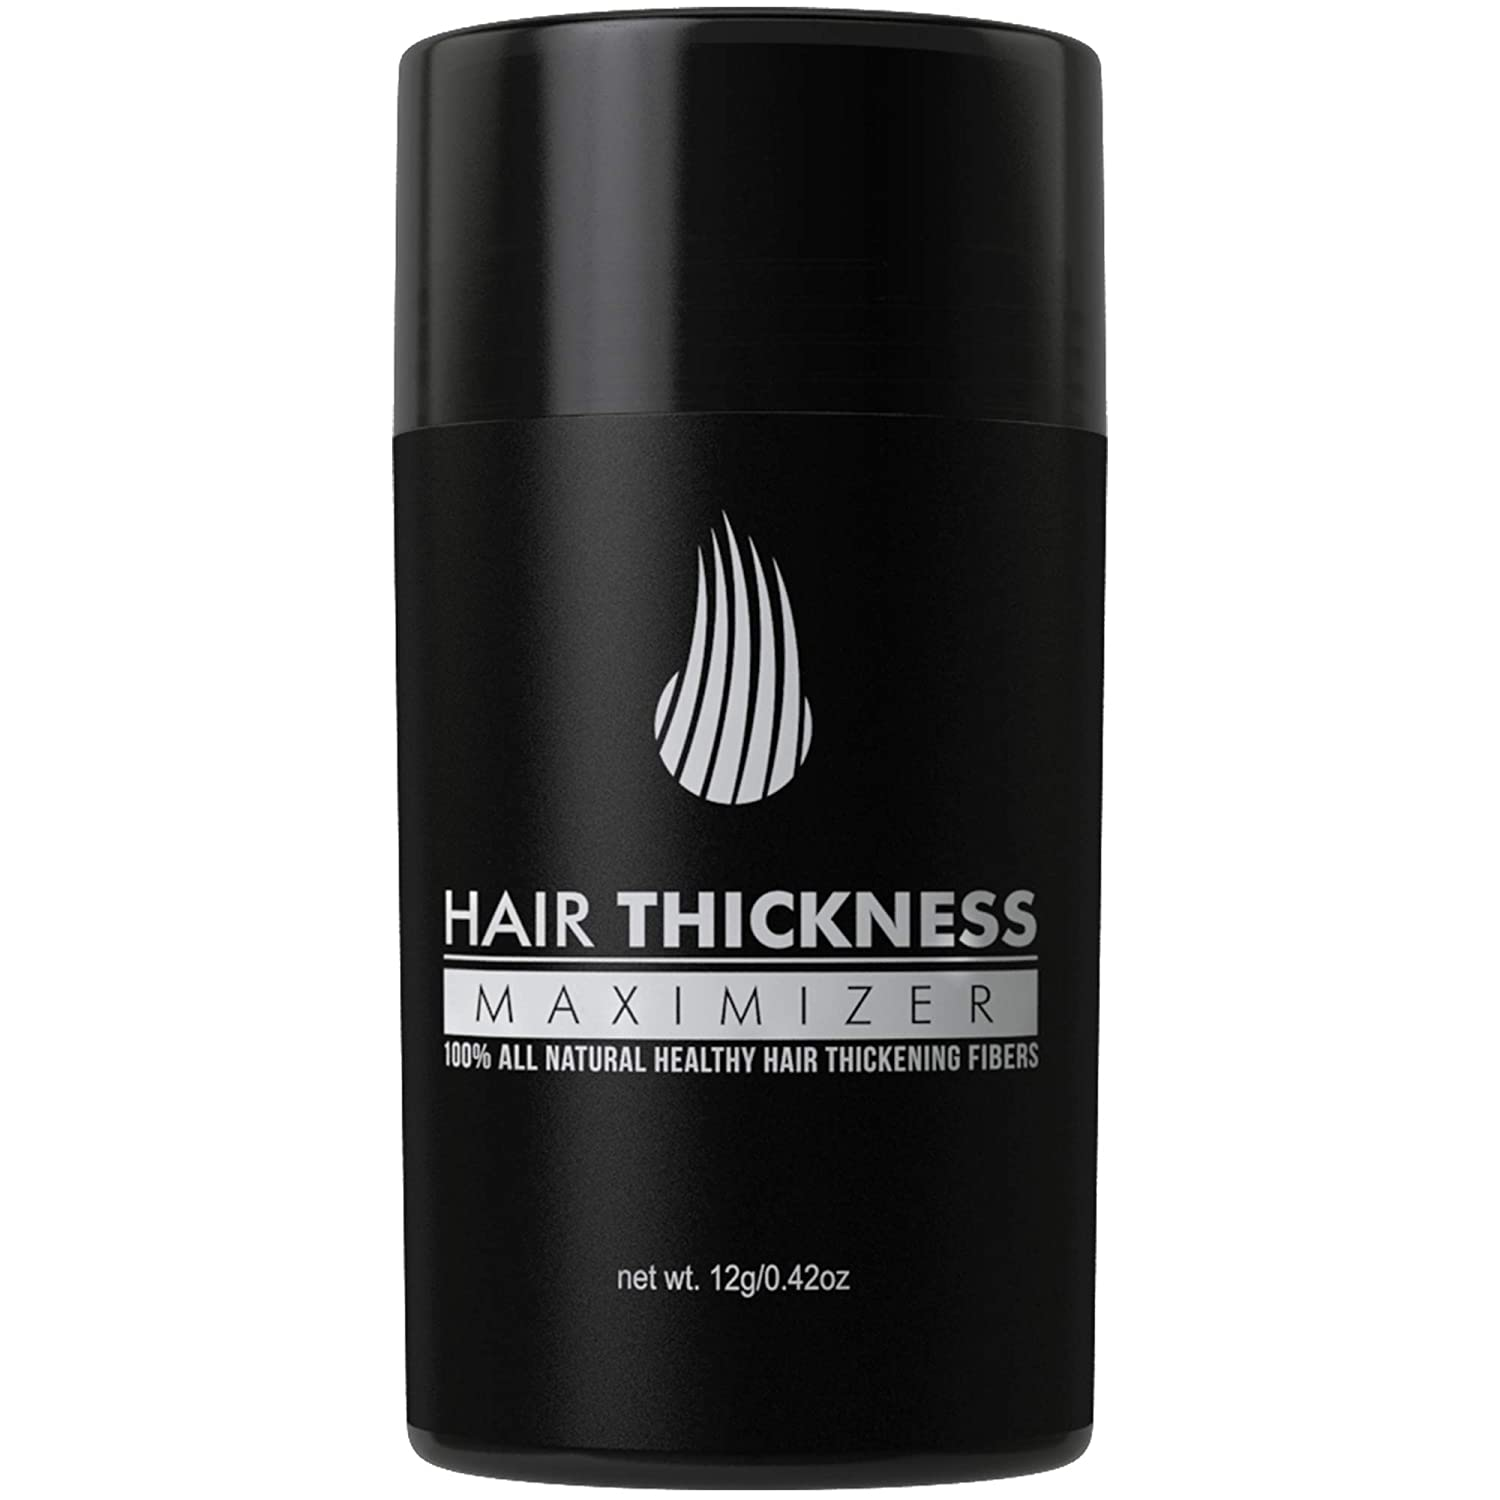 Hair Thickness Maximizer 2.0 - Safer Than Keratin Hair Building Fibers with 2nd Gen All Natural Plant Based Hair Loss Concealing Fillers for Instant Thickening of Thinning or Balding Hair (Dark Brown): Beauty